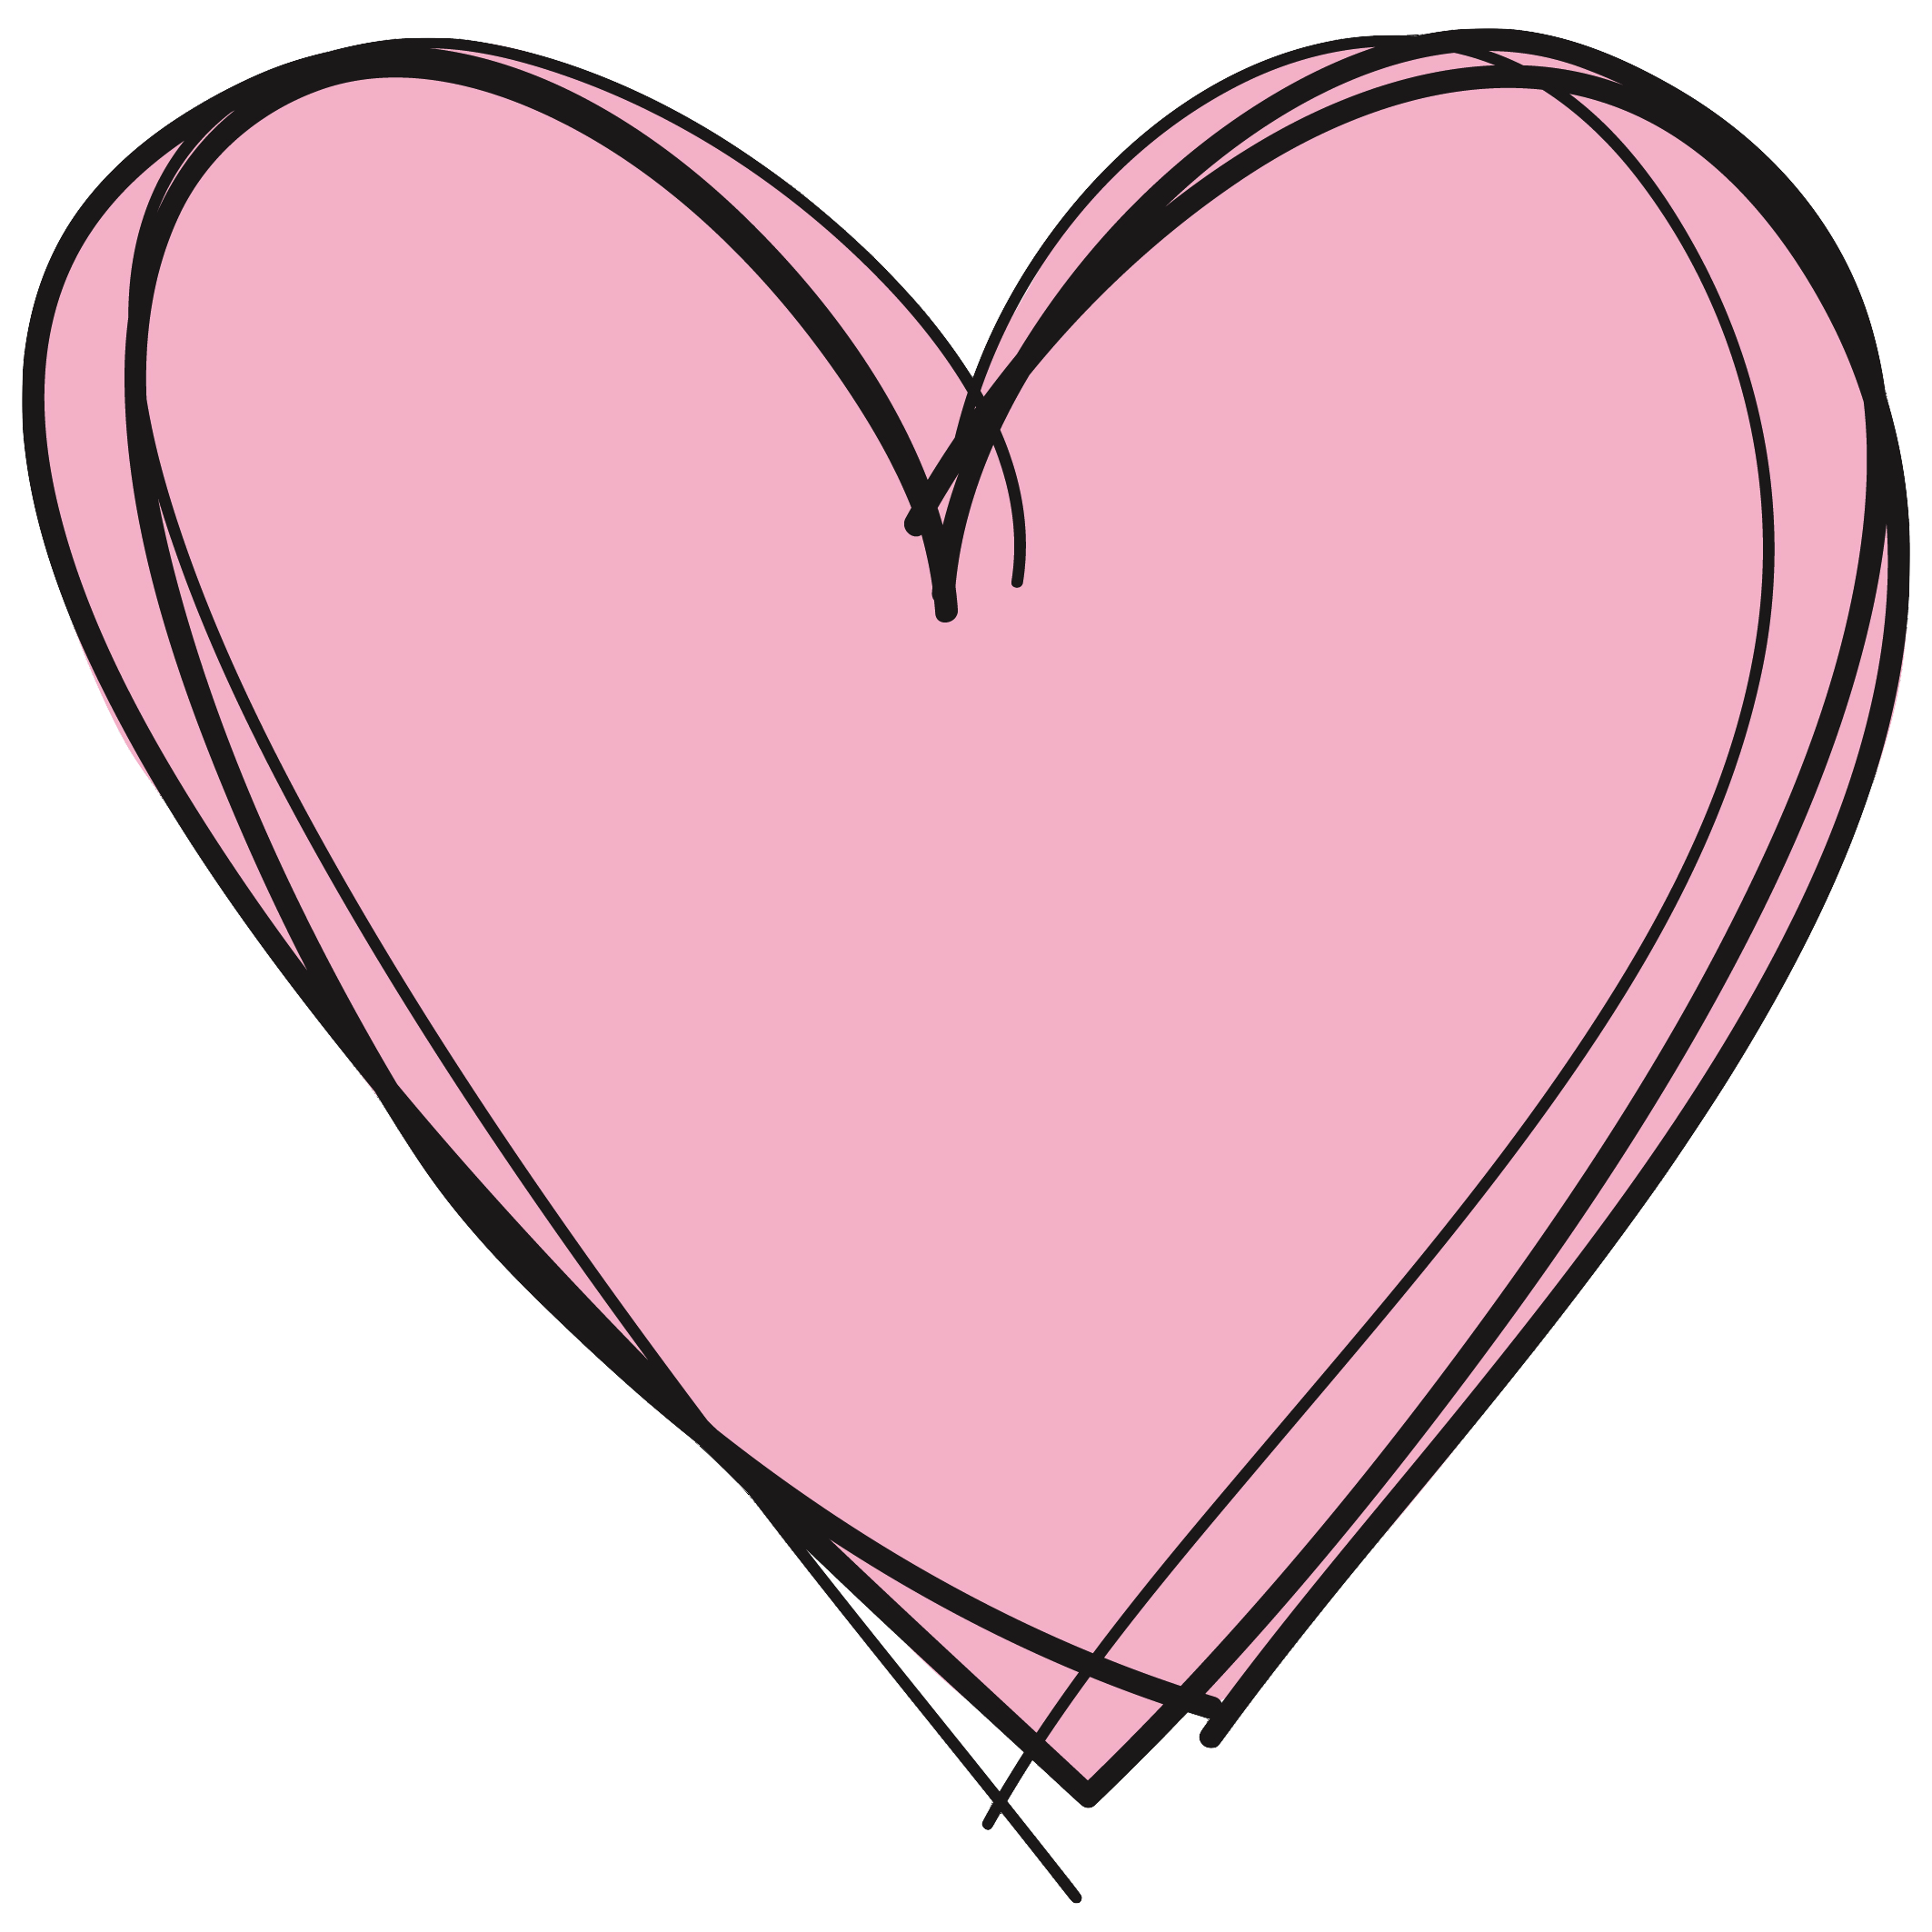 Png heart. Free images download